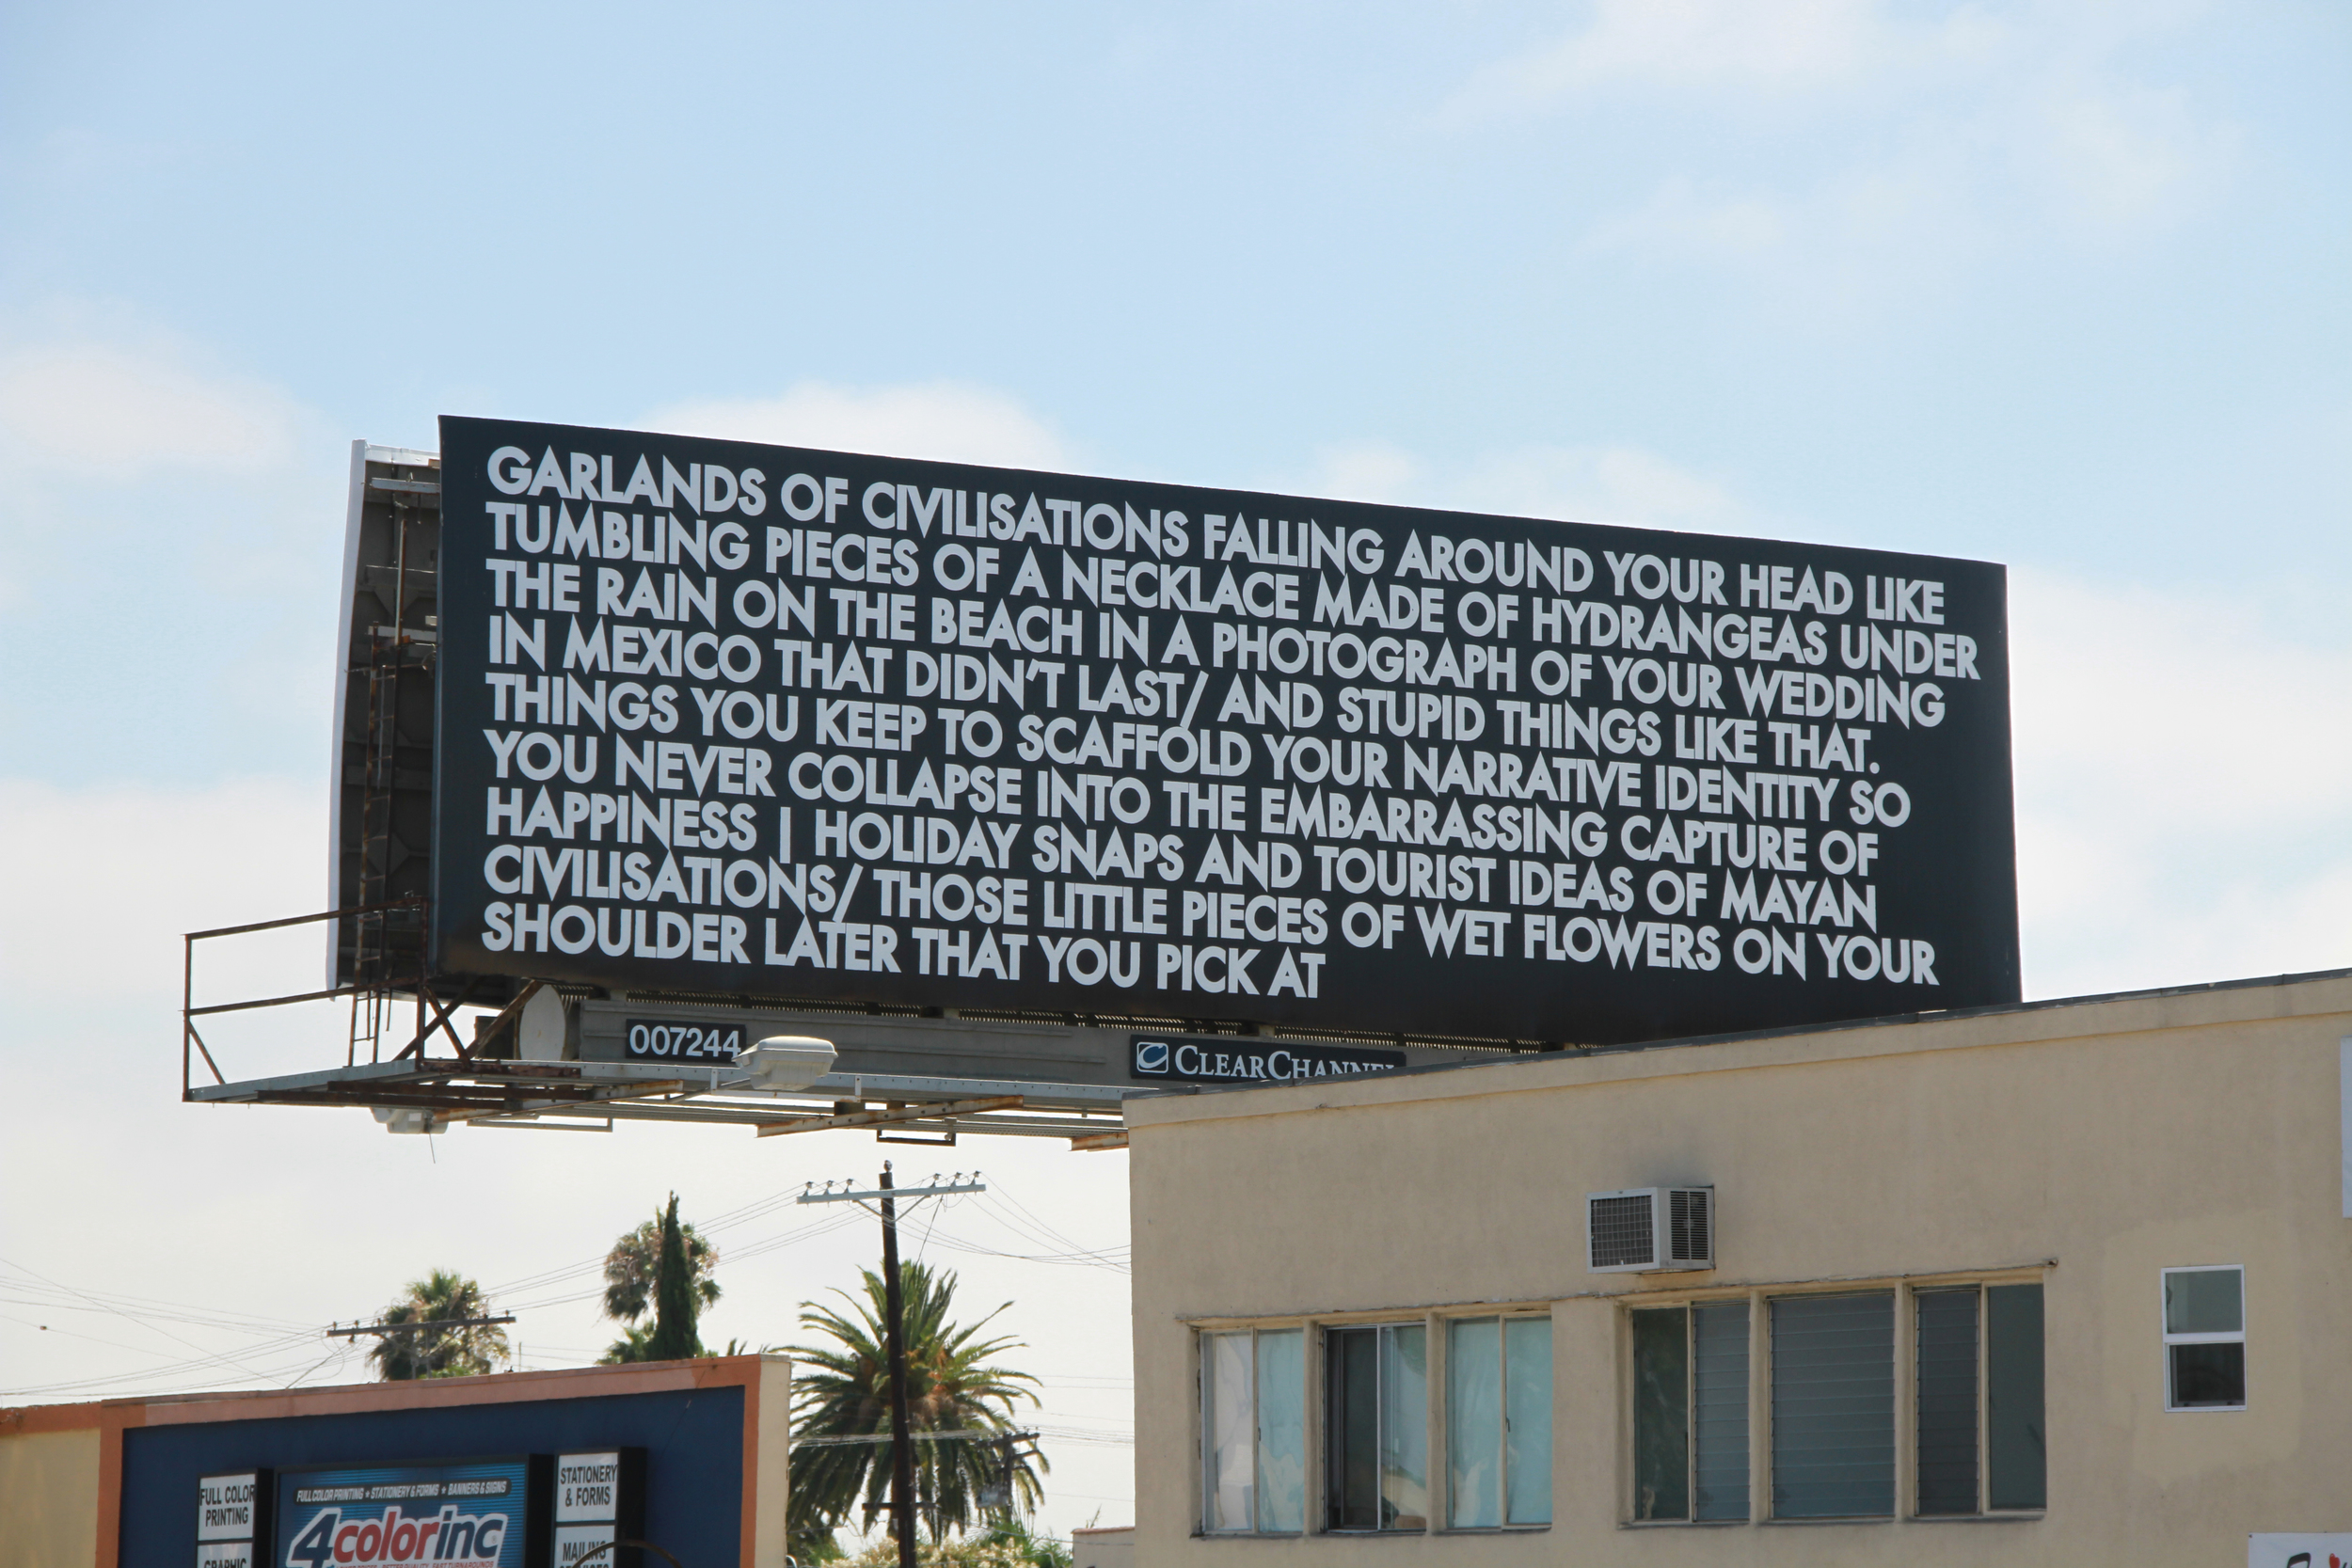 corrected LA BILLBOARD GARLANDS BEST ONE ROB SHOT.jpg